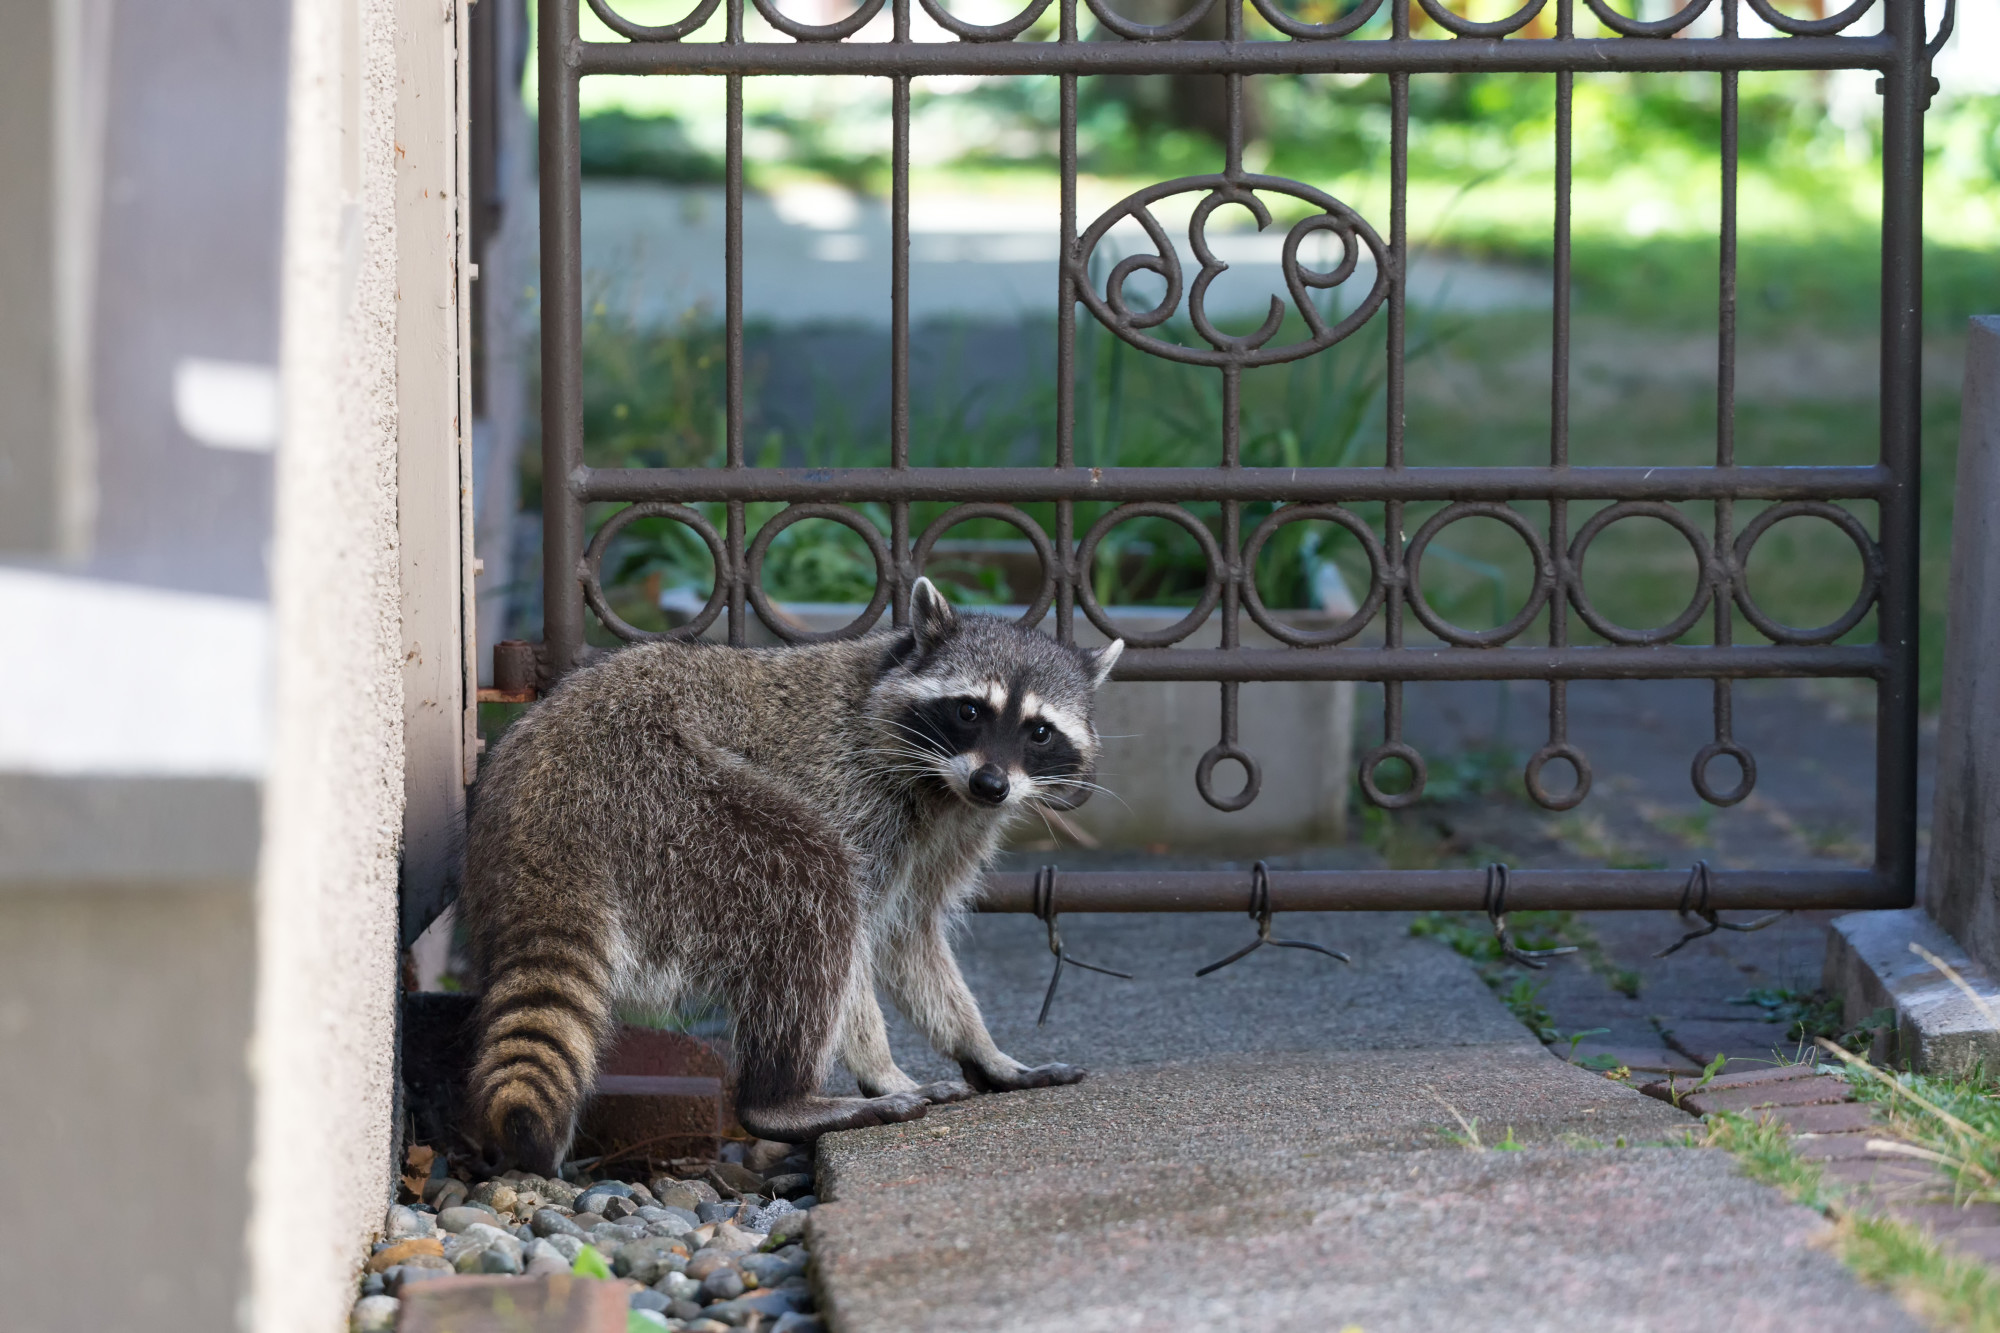 Raccoon in a House: What to Do If a Raccoon Is in Your Home